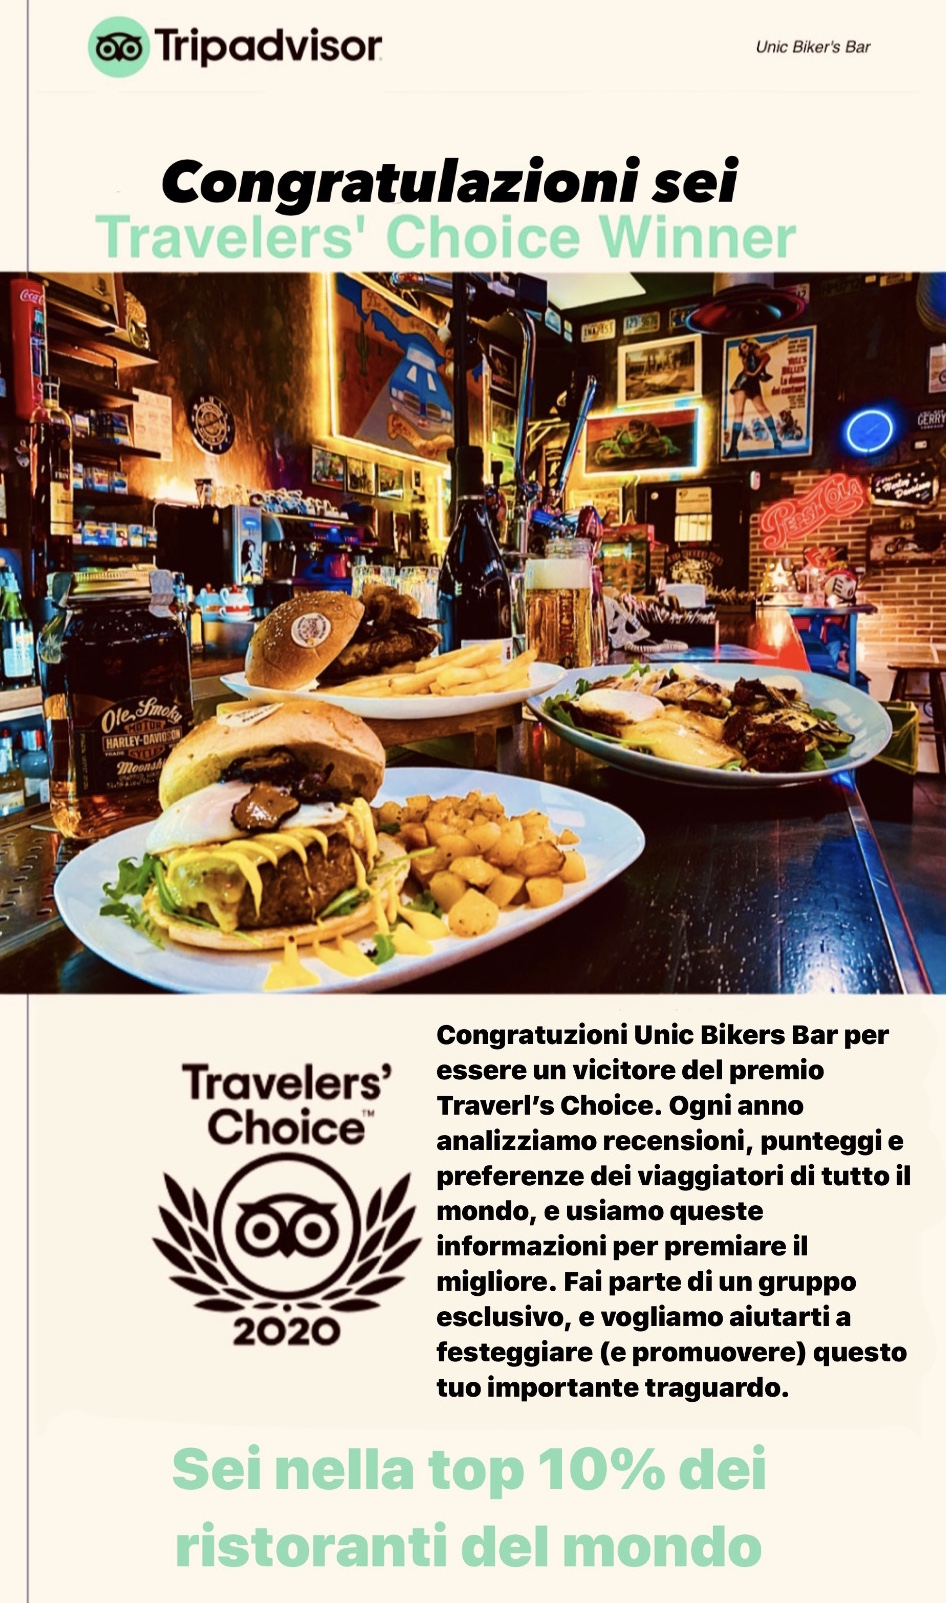 Trip Advisor - Travellers Choice Award 2020 - Unic Bikers Bar